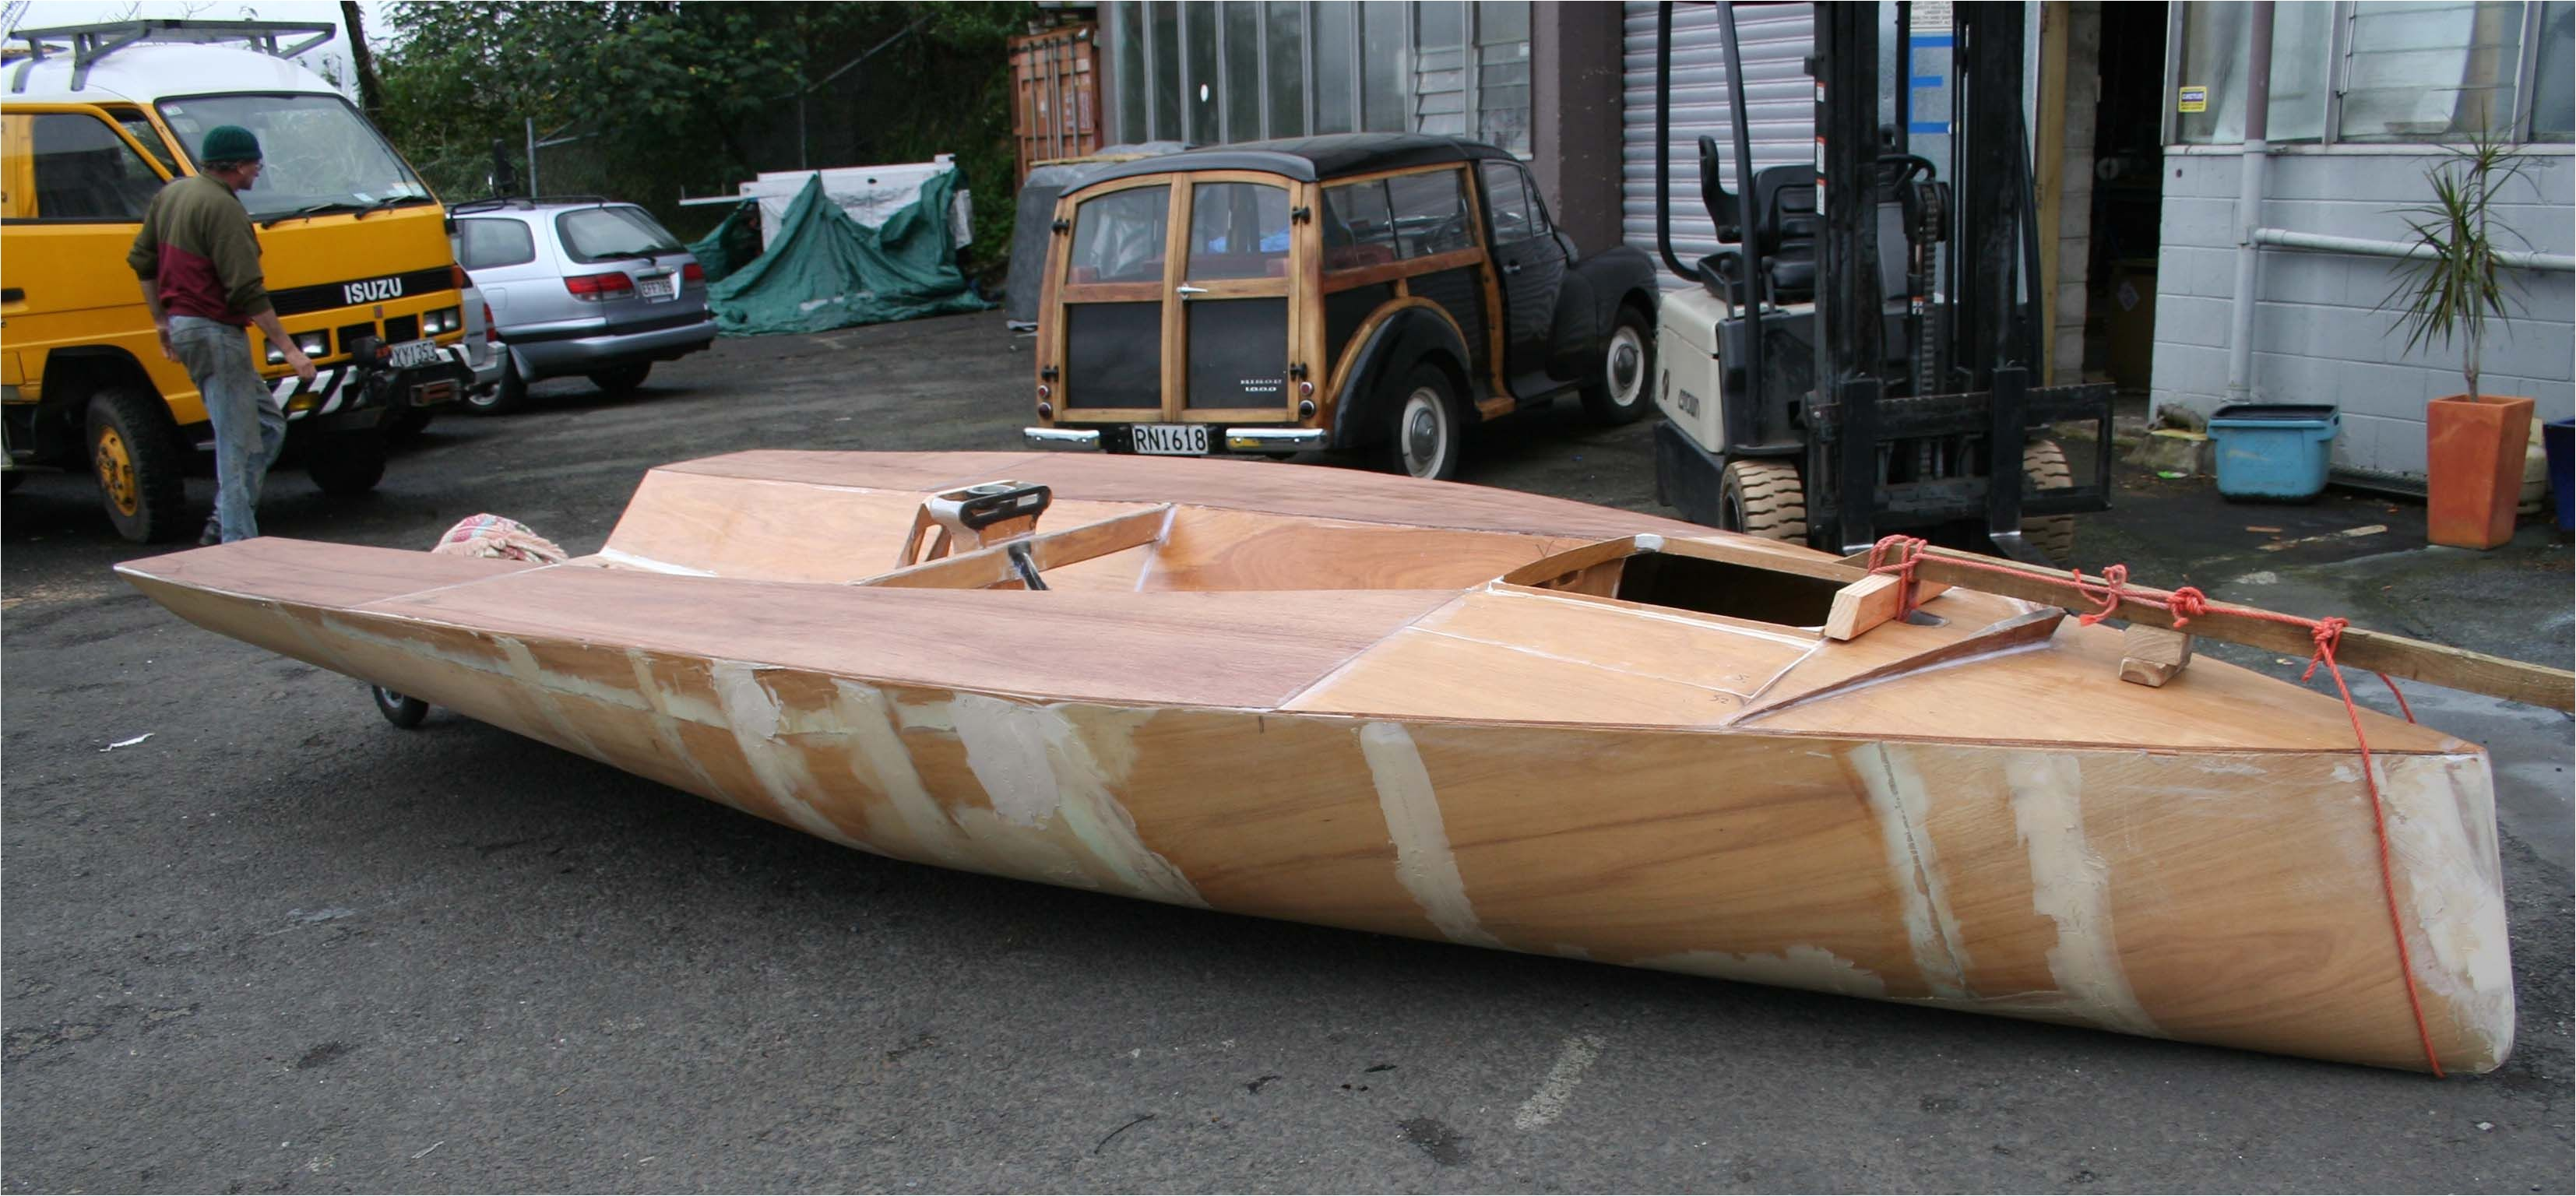 Home Built Boat Plans Free Plywood Stitch and Glue Boat Plans 2 Jpg 3308 1536